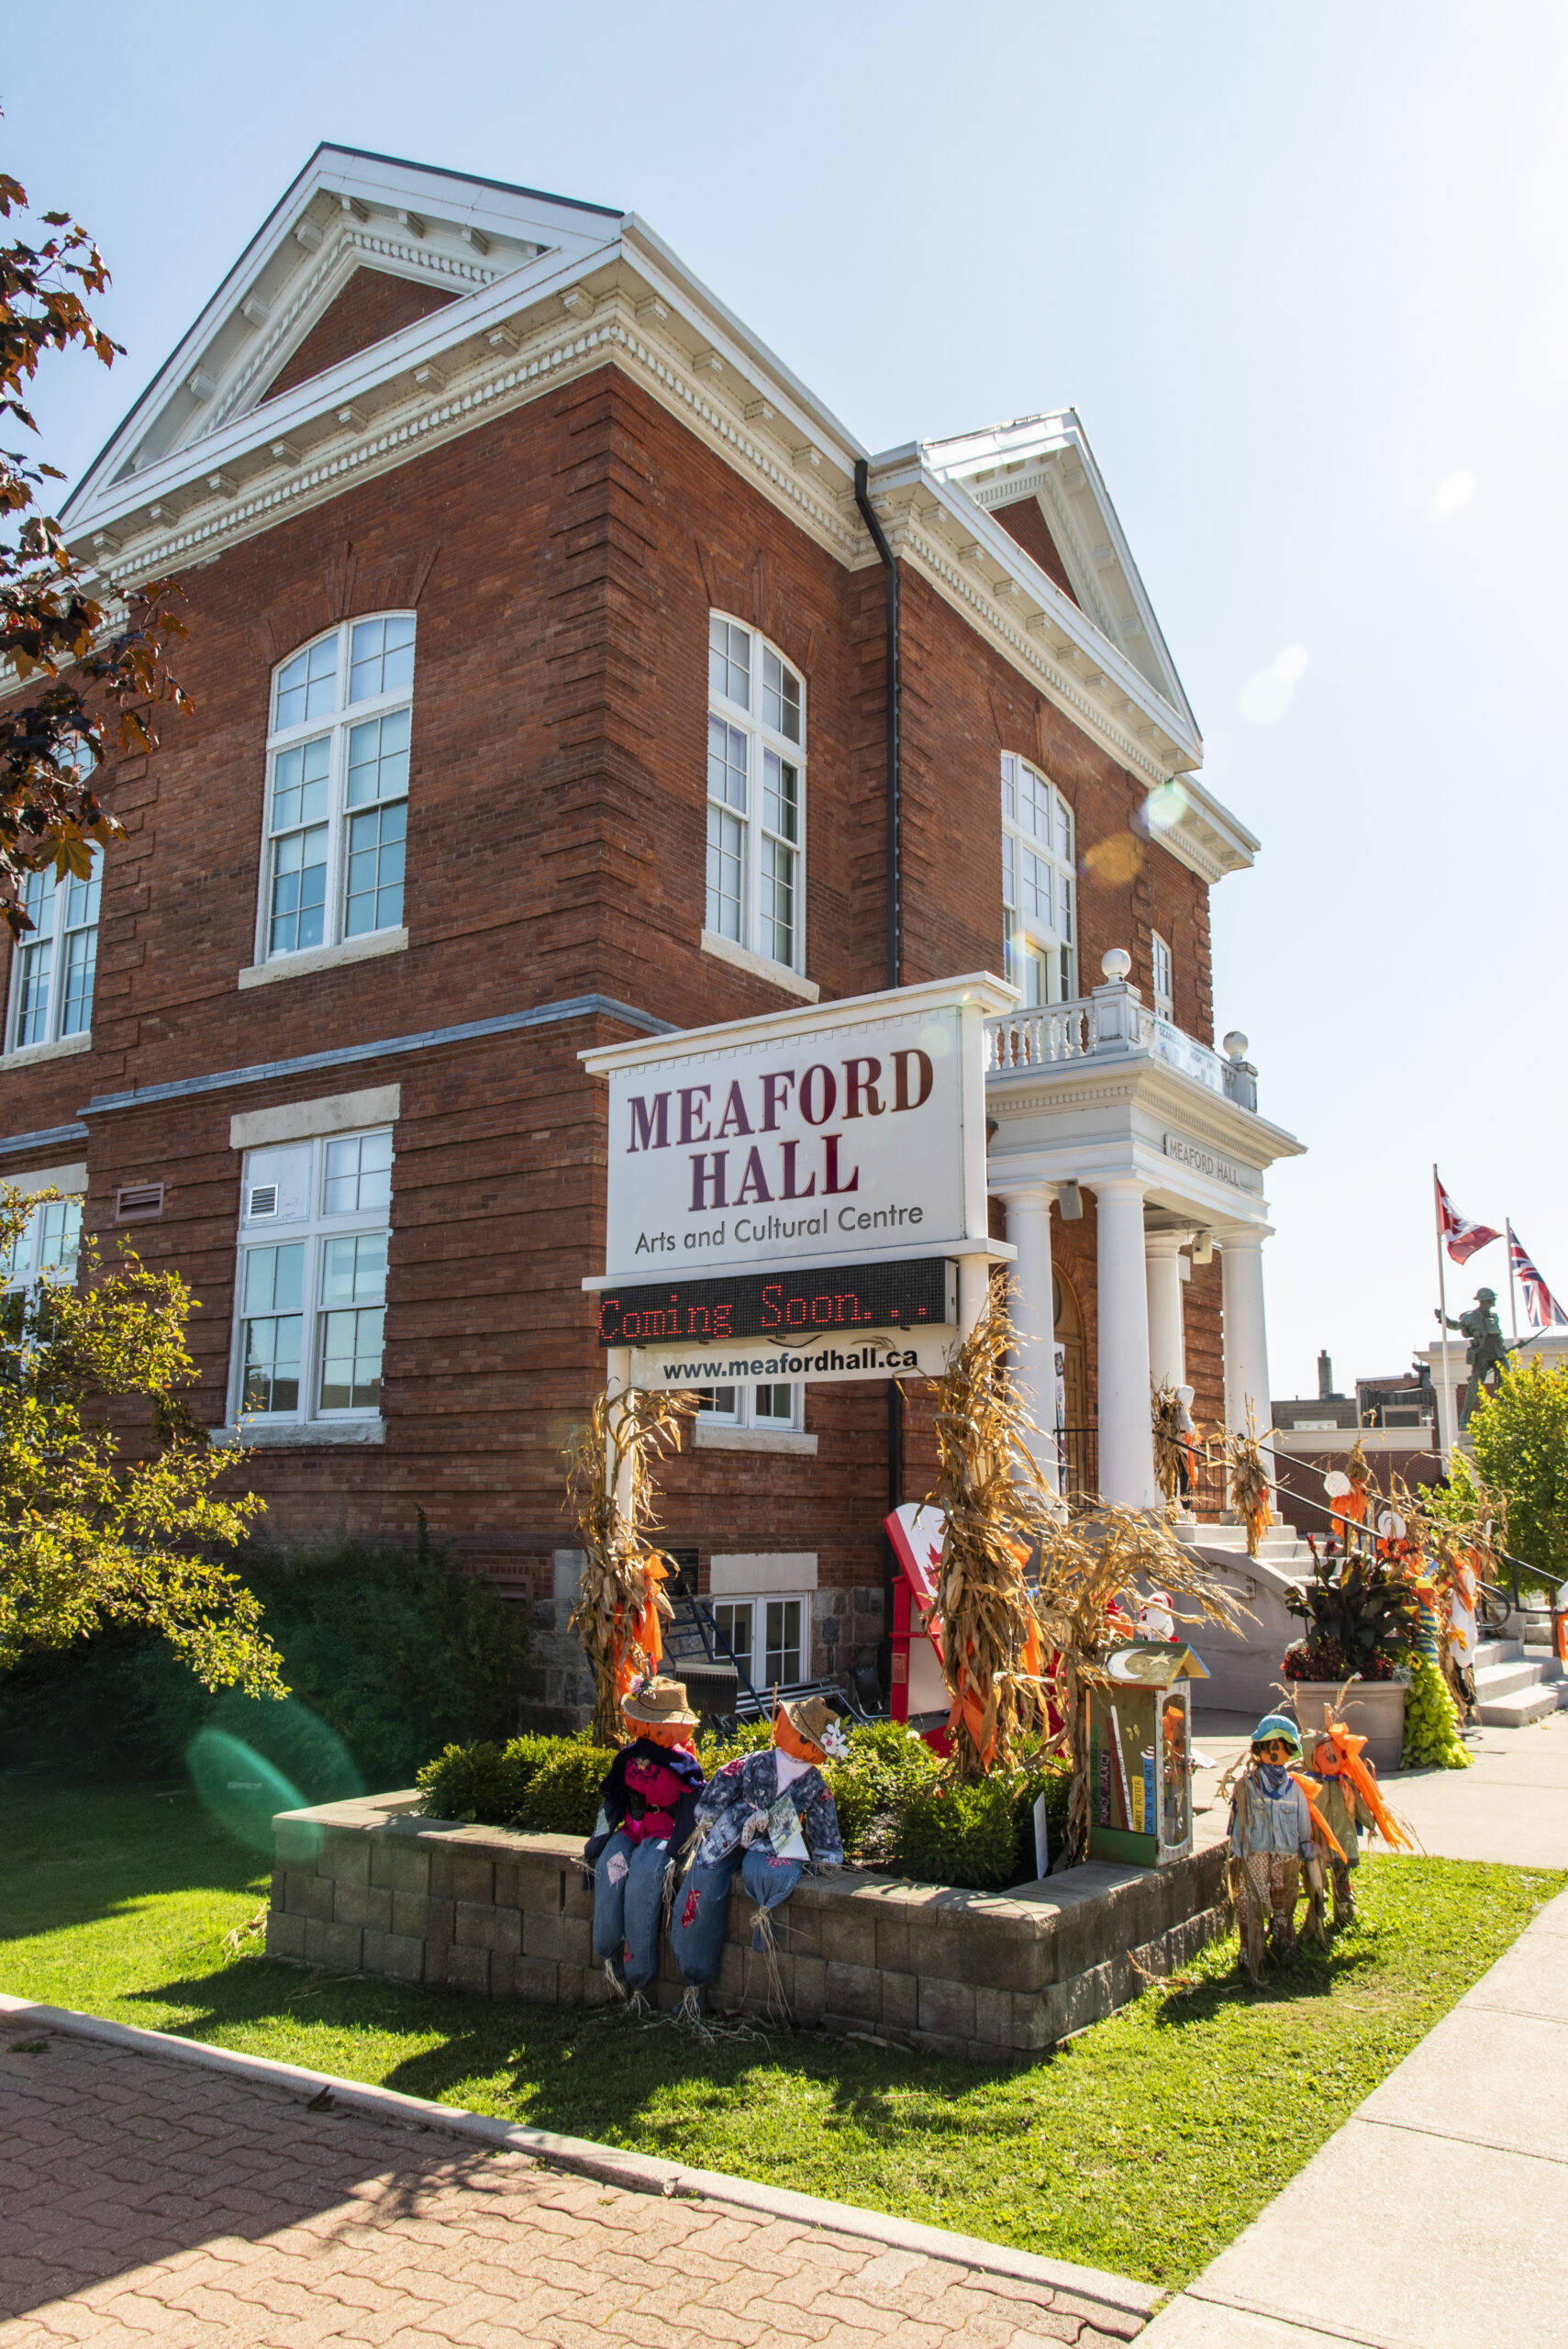 Meaford Hall